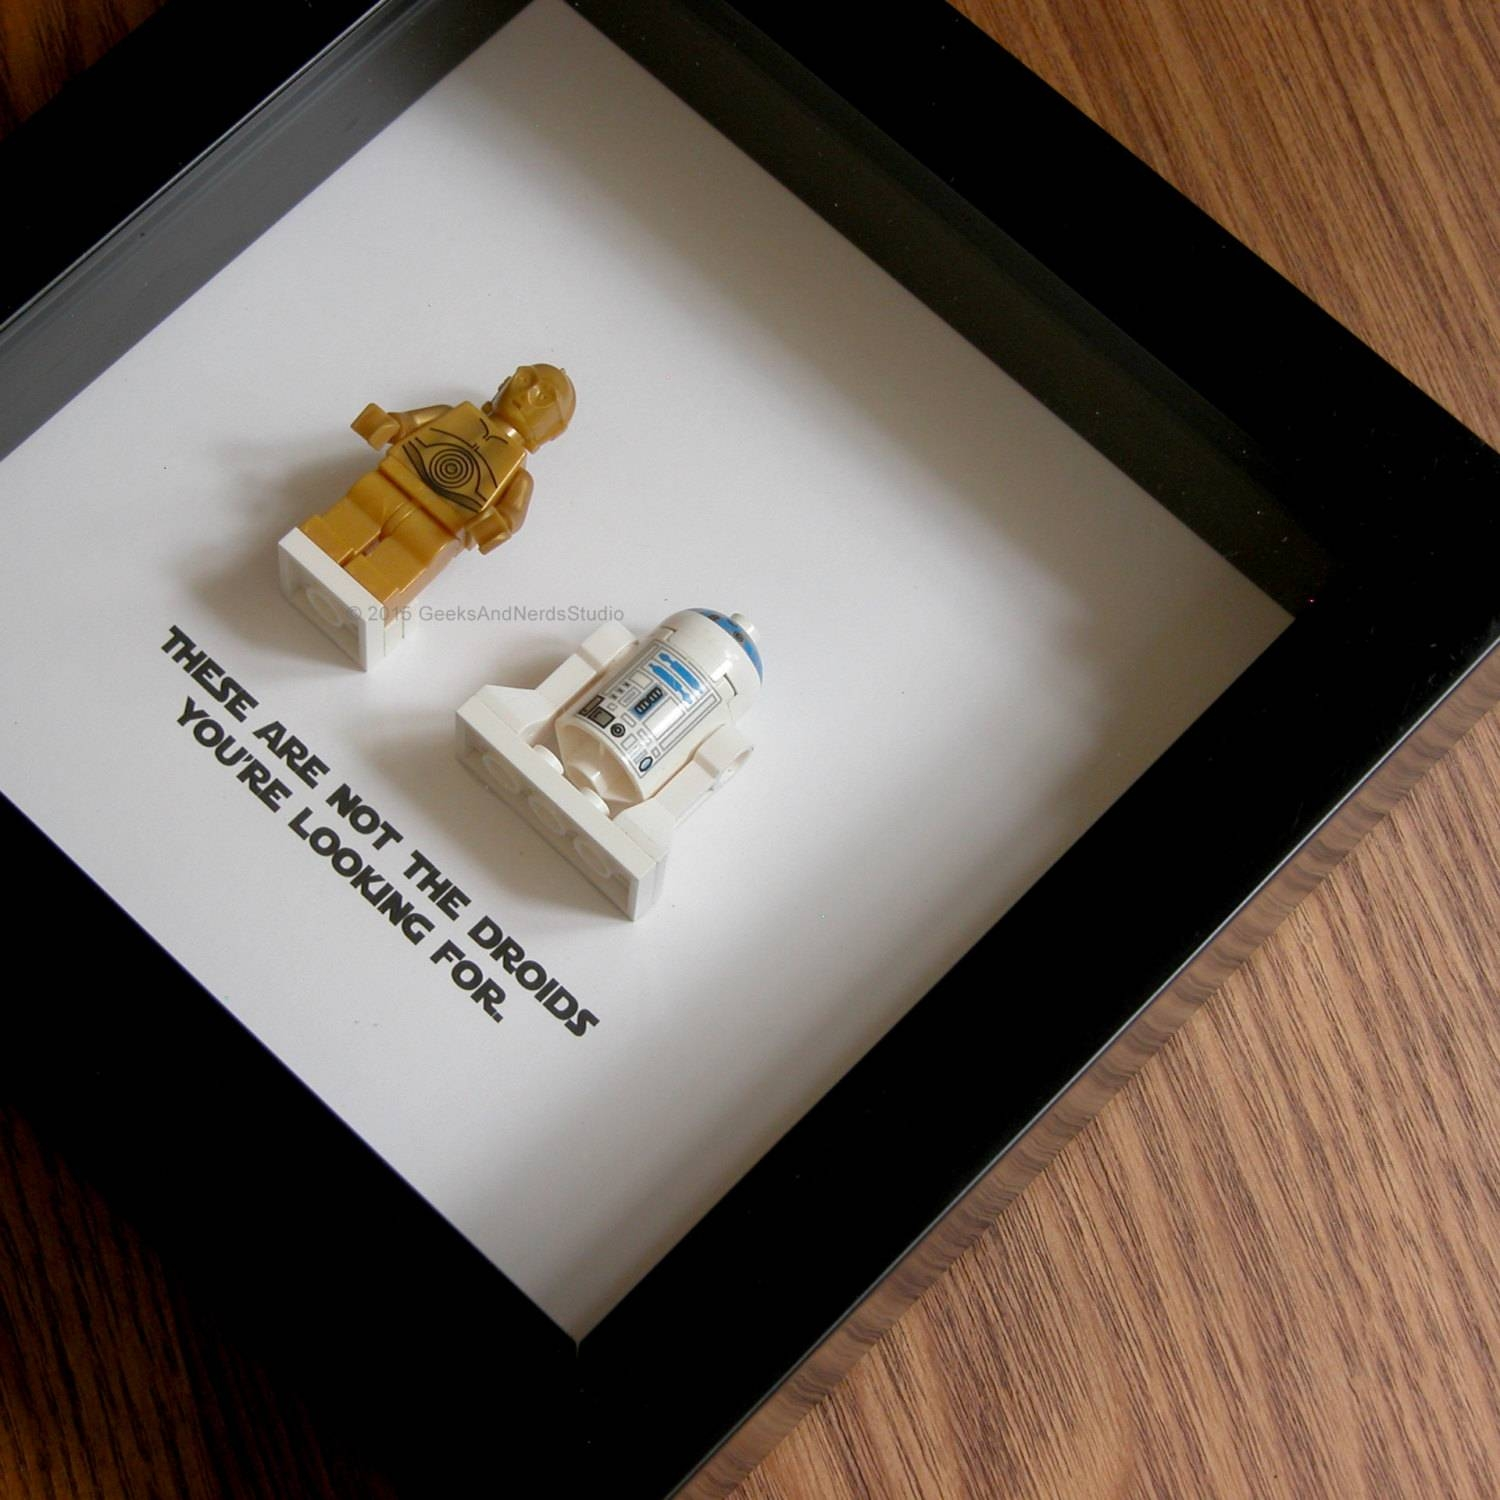 Star Wars Art Lego R2d2 And C3po Wedding Gift Wall Decor Inside Current Lego Star Wars Wall Art (View 9 of 20)